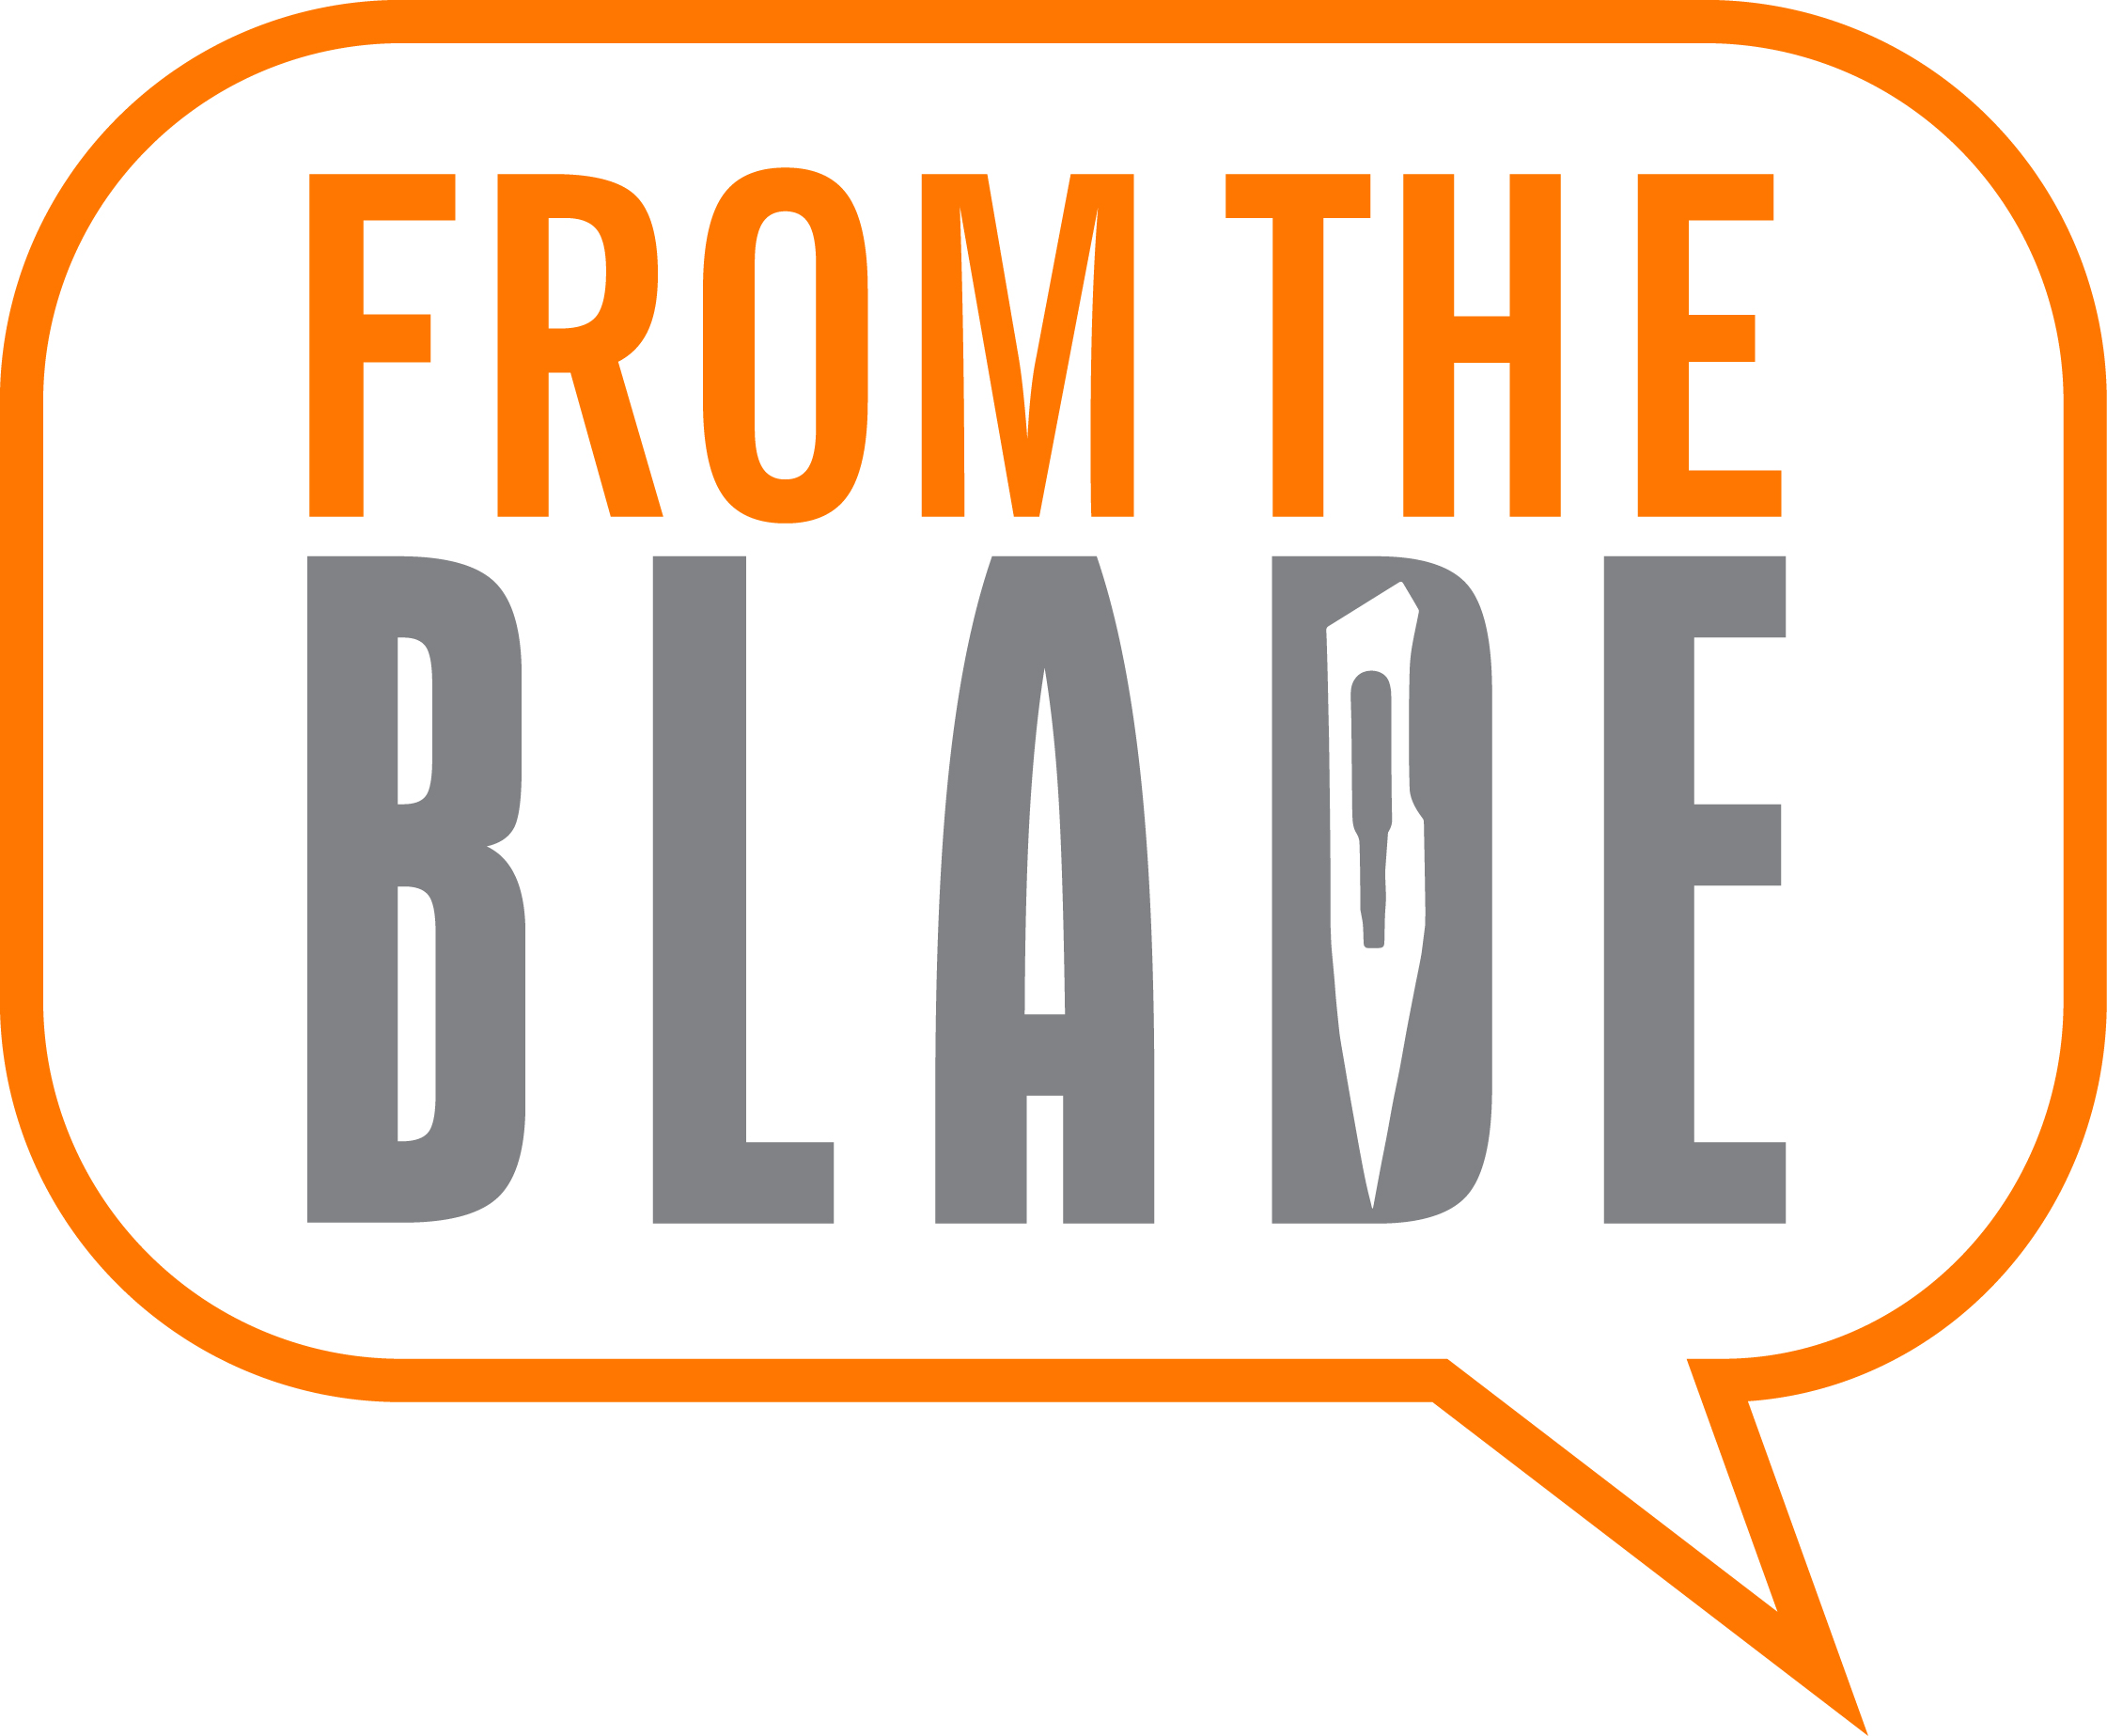 From the Blade show art